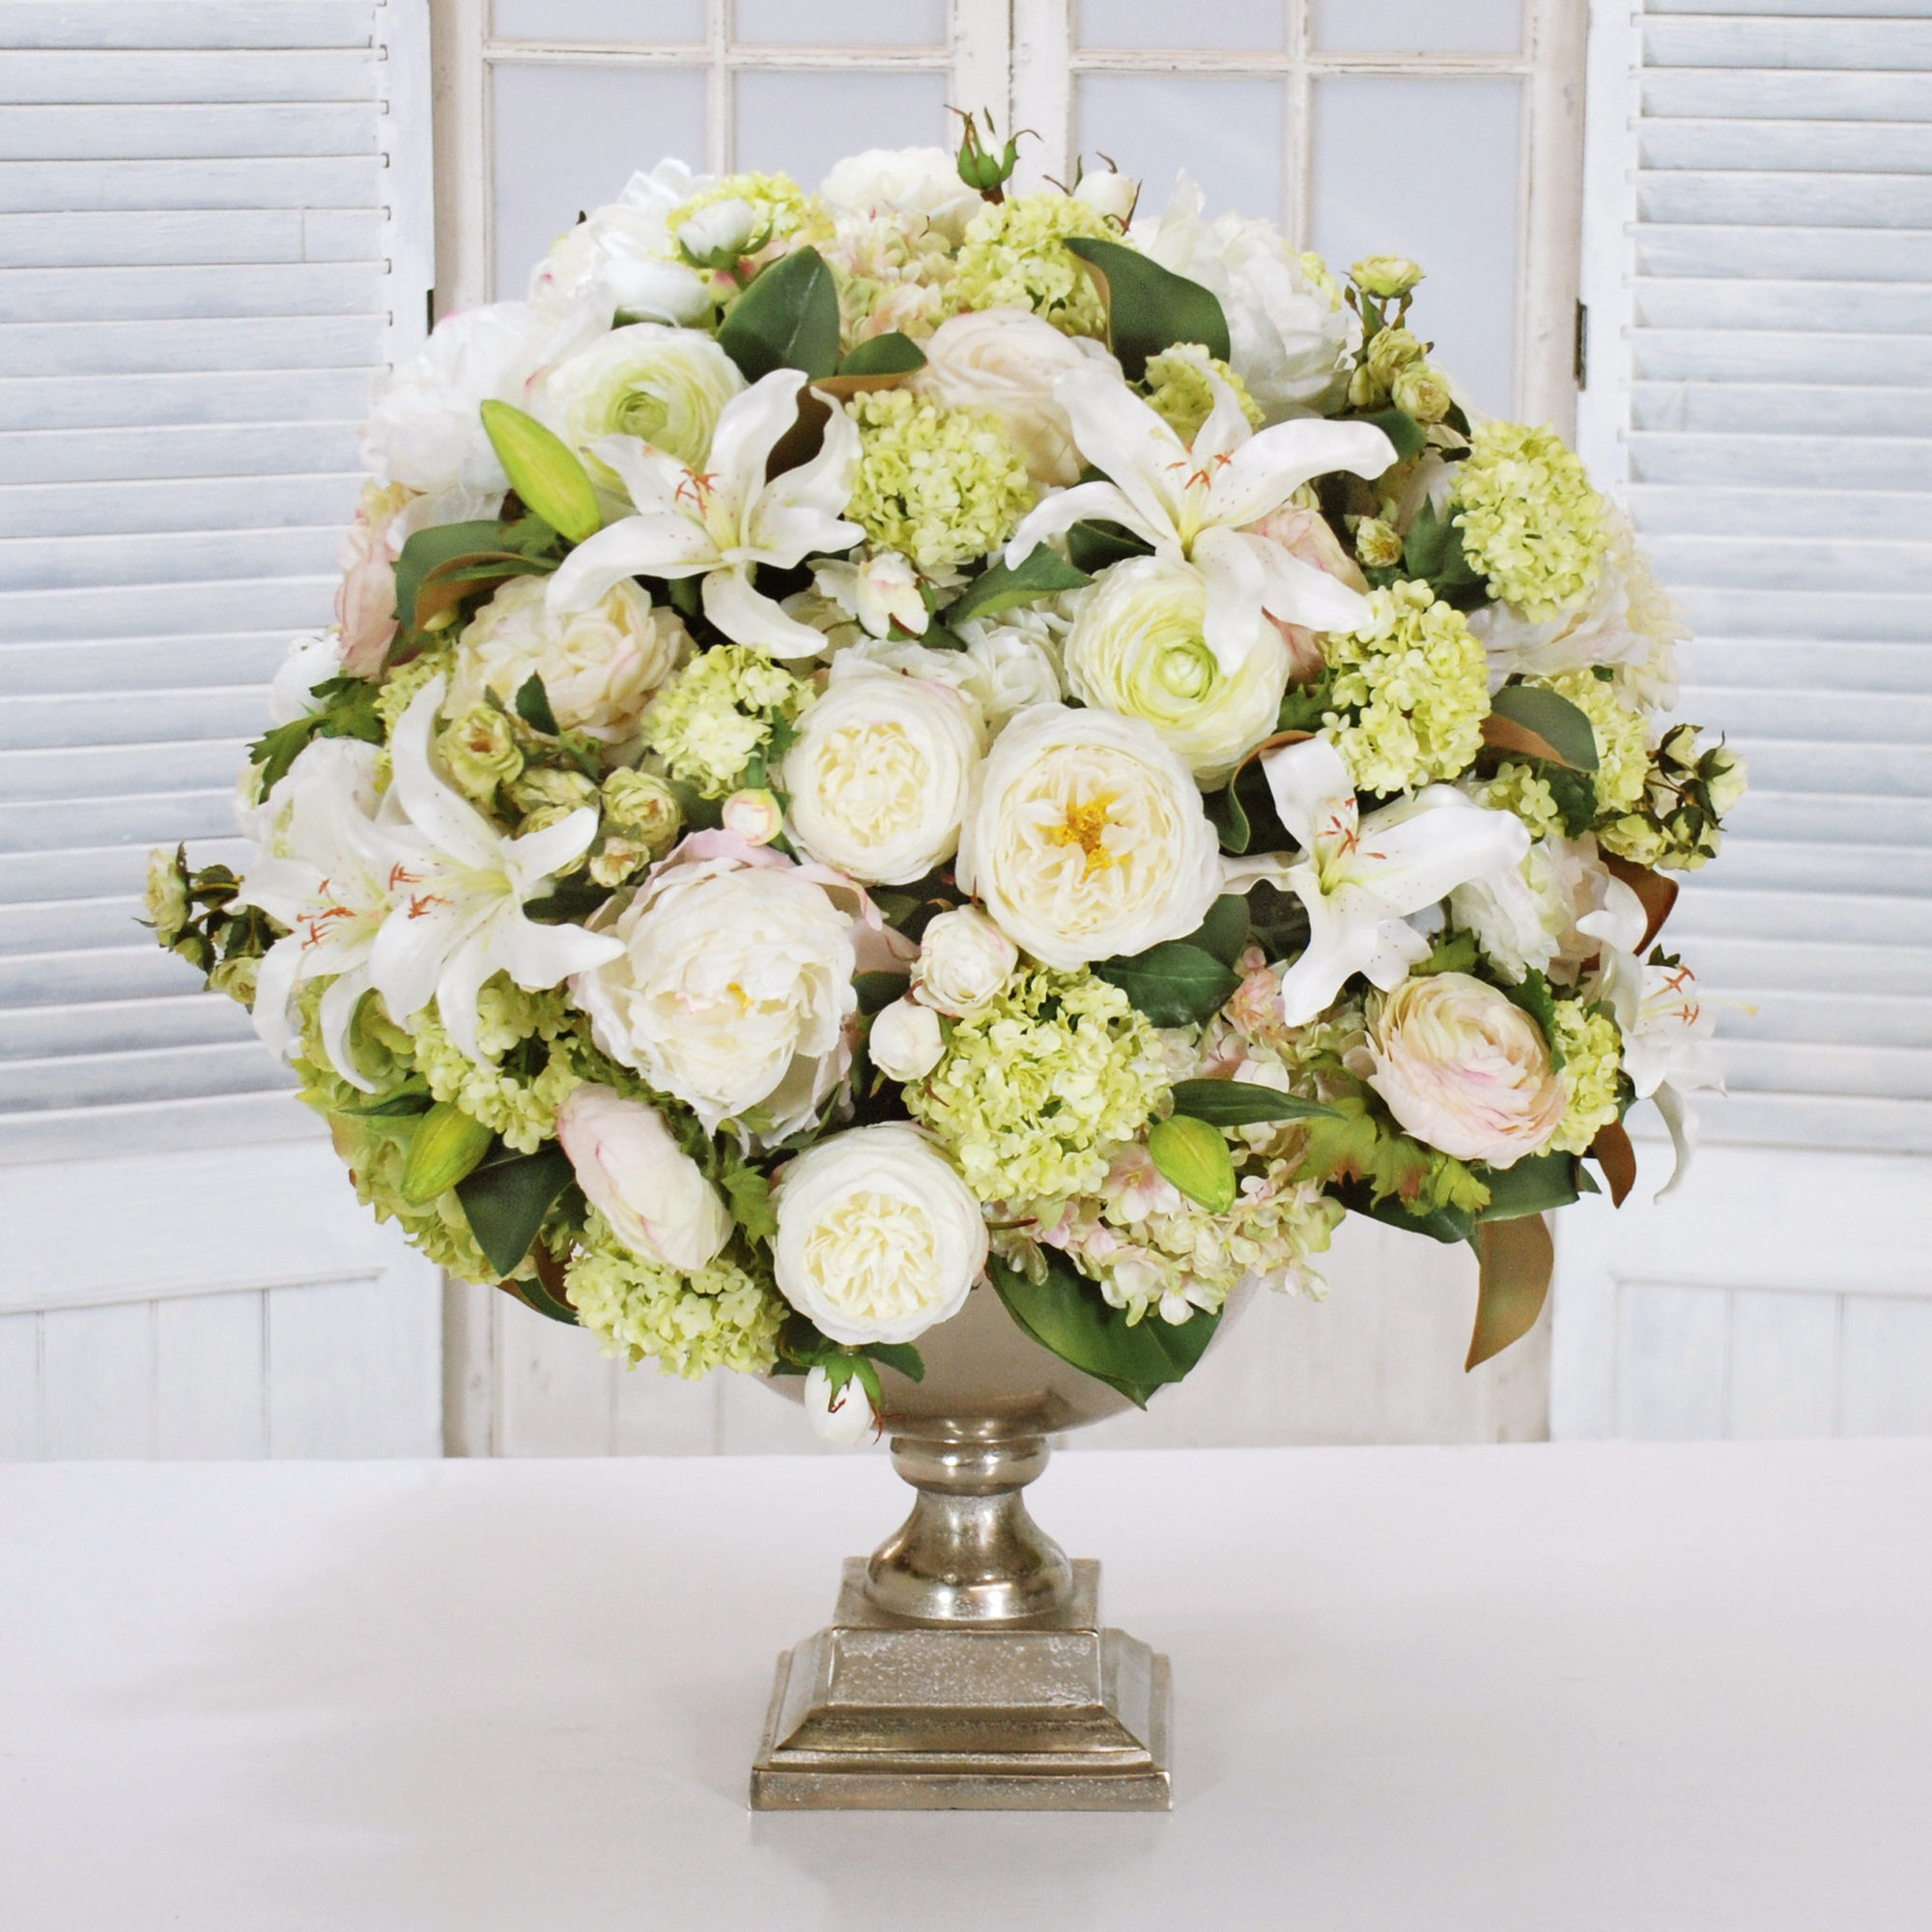 MINI ICON ROSE, PEONY, HYDRANGEA MIX (WHD107-CH) - Winward Home faux floral arrangements